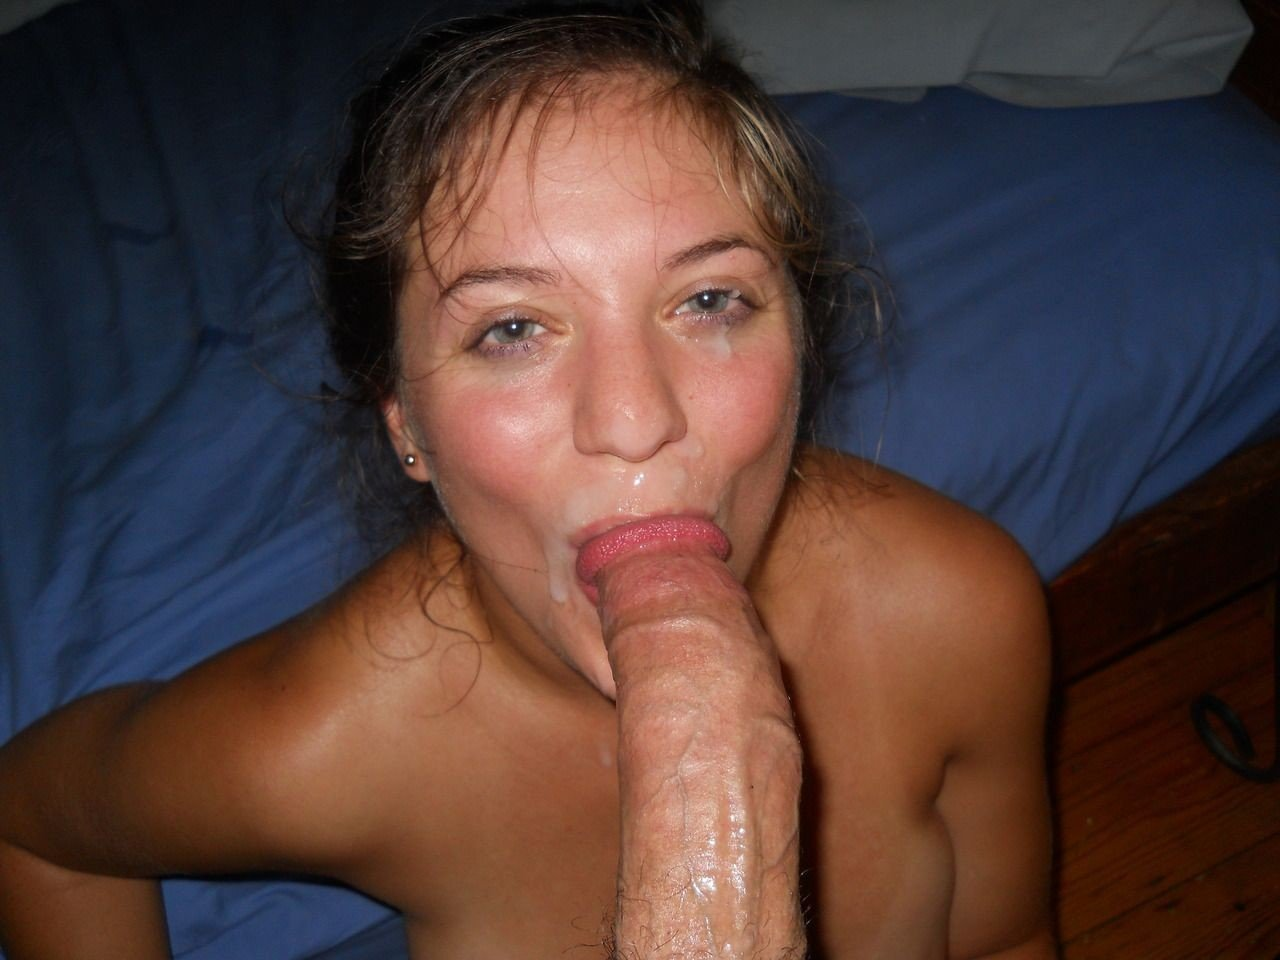 can not sexy assholes handjob cock and facial something is. Thanks for